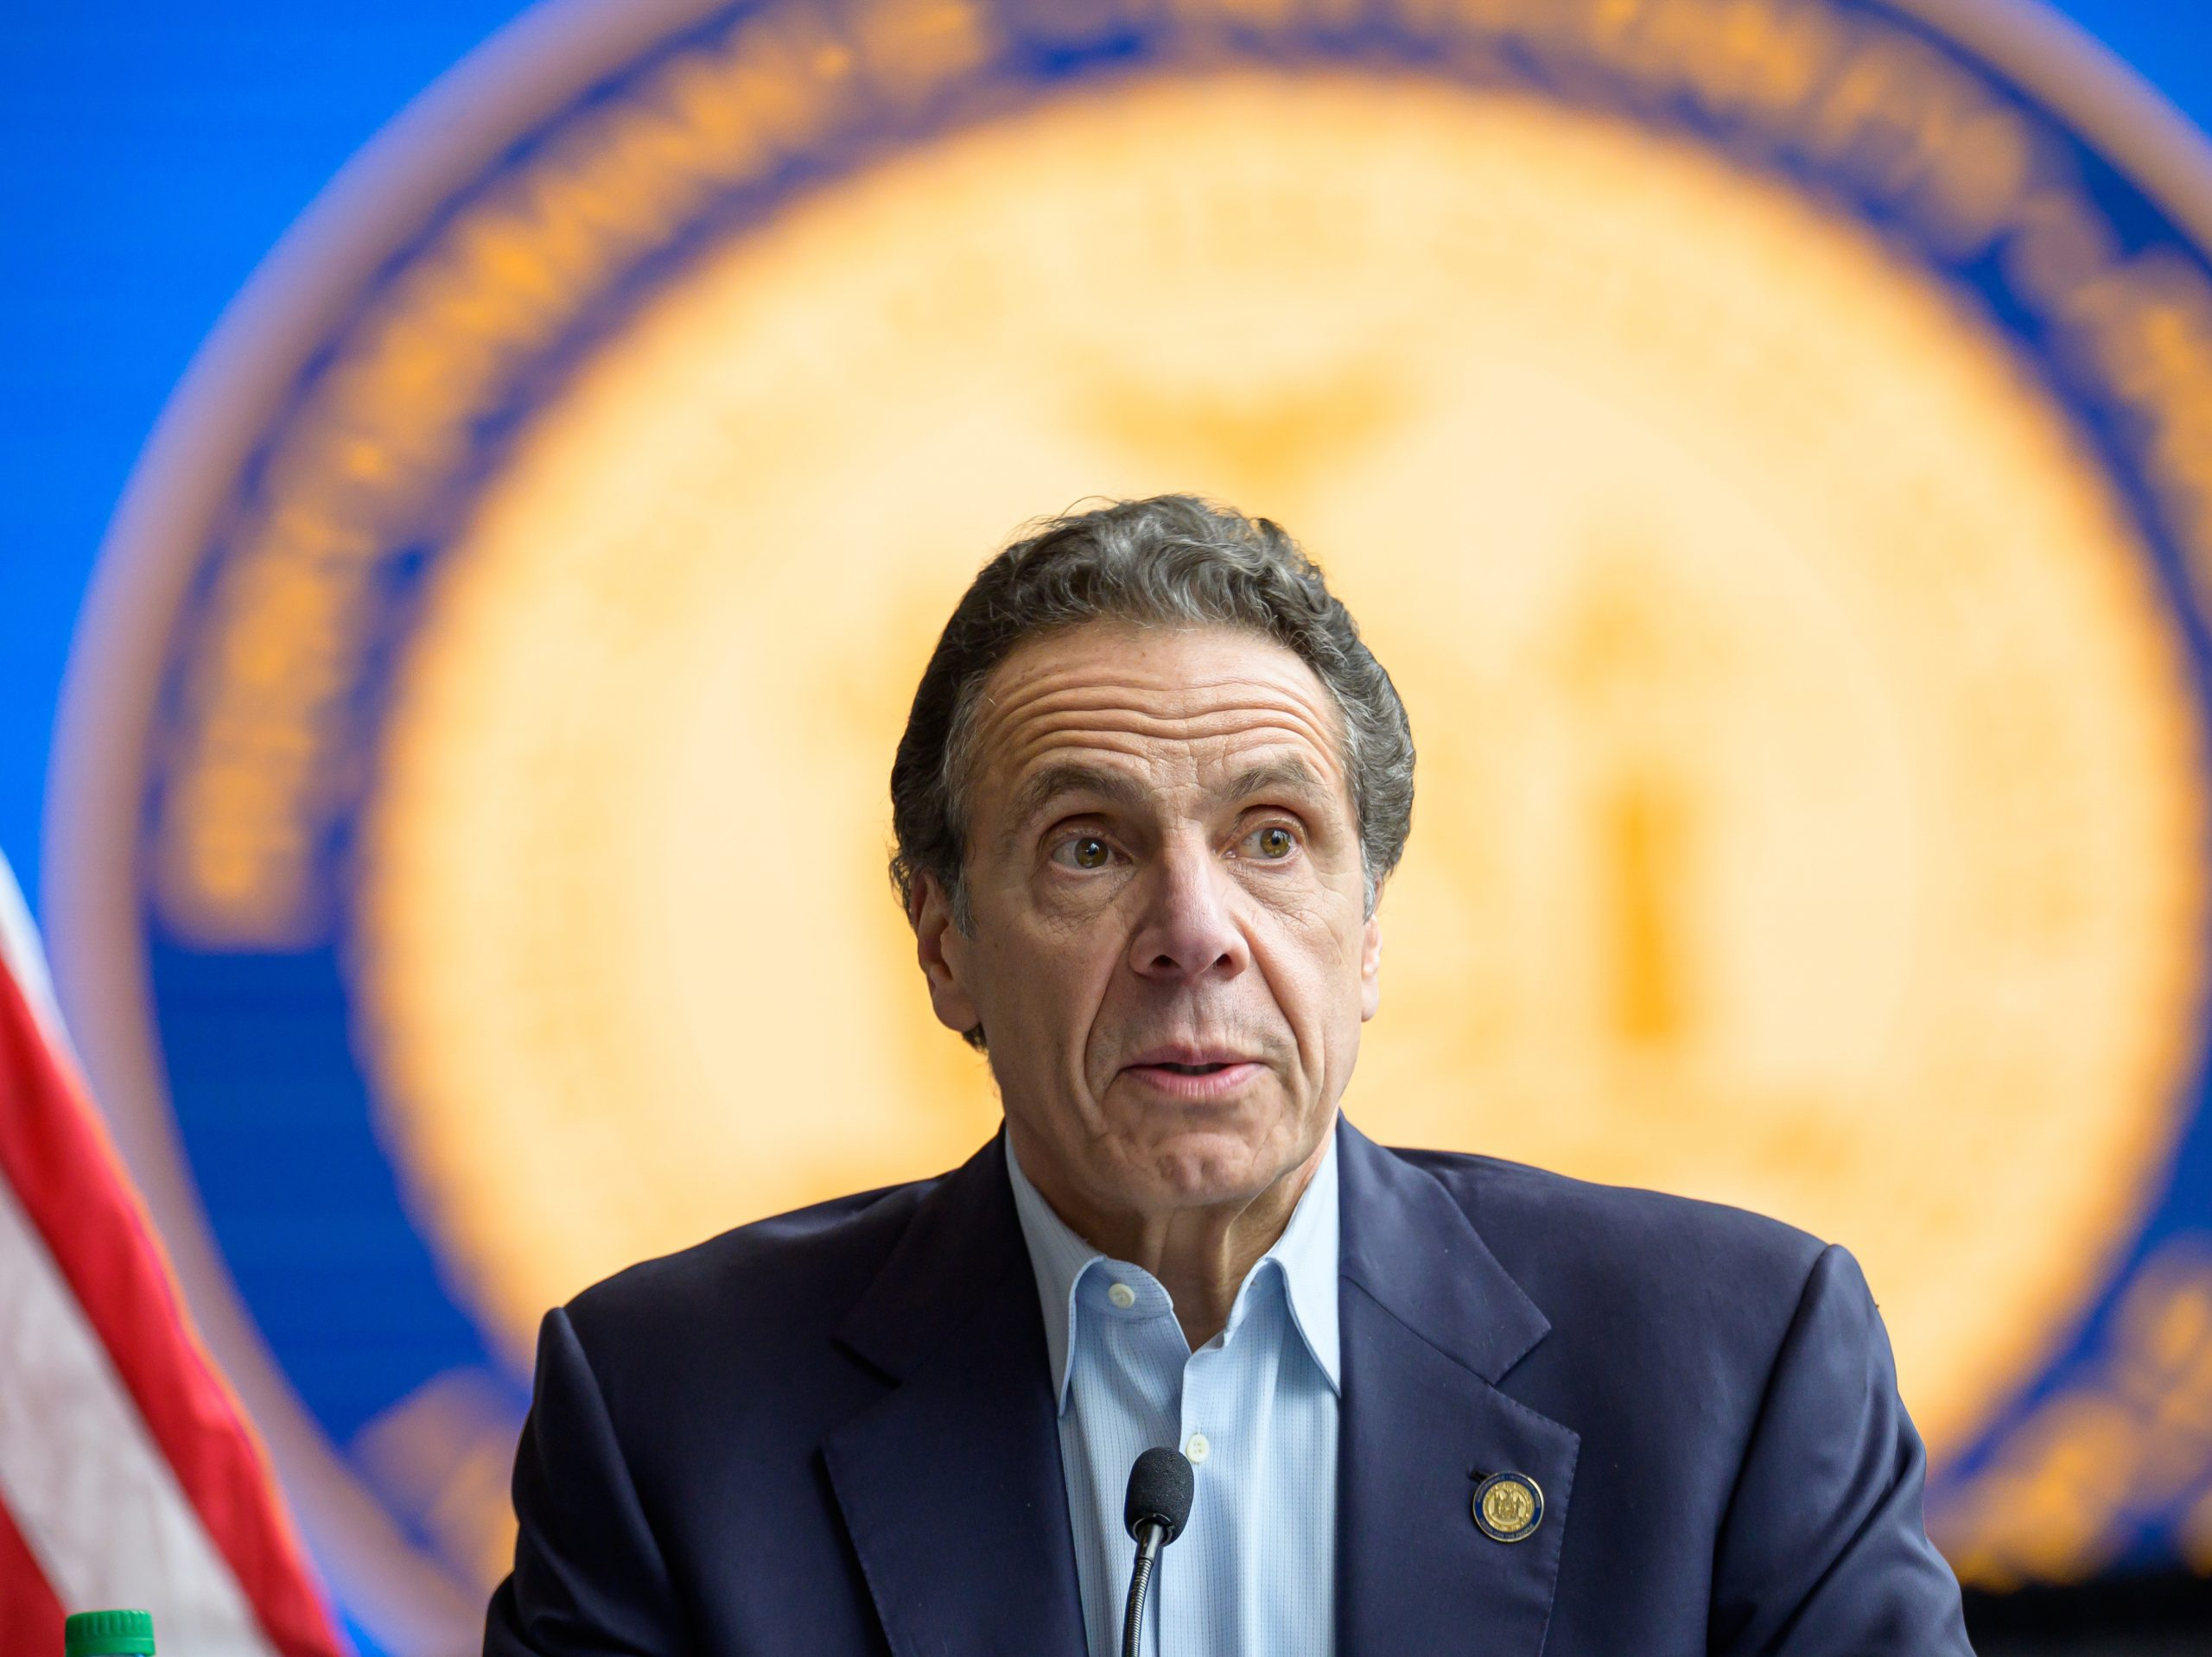 Following the arrival in New York City of the U.S. Naval hospital ship Comfort, N.Y. Gov. Andrew Cuomo is seen during a press conference on March 30 at the field hospital site at the Javits Center.